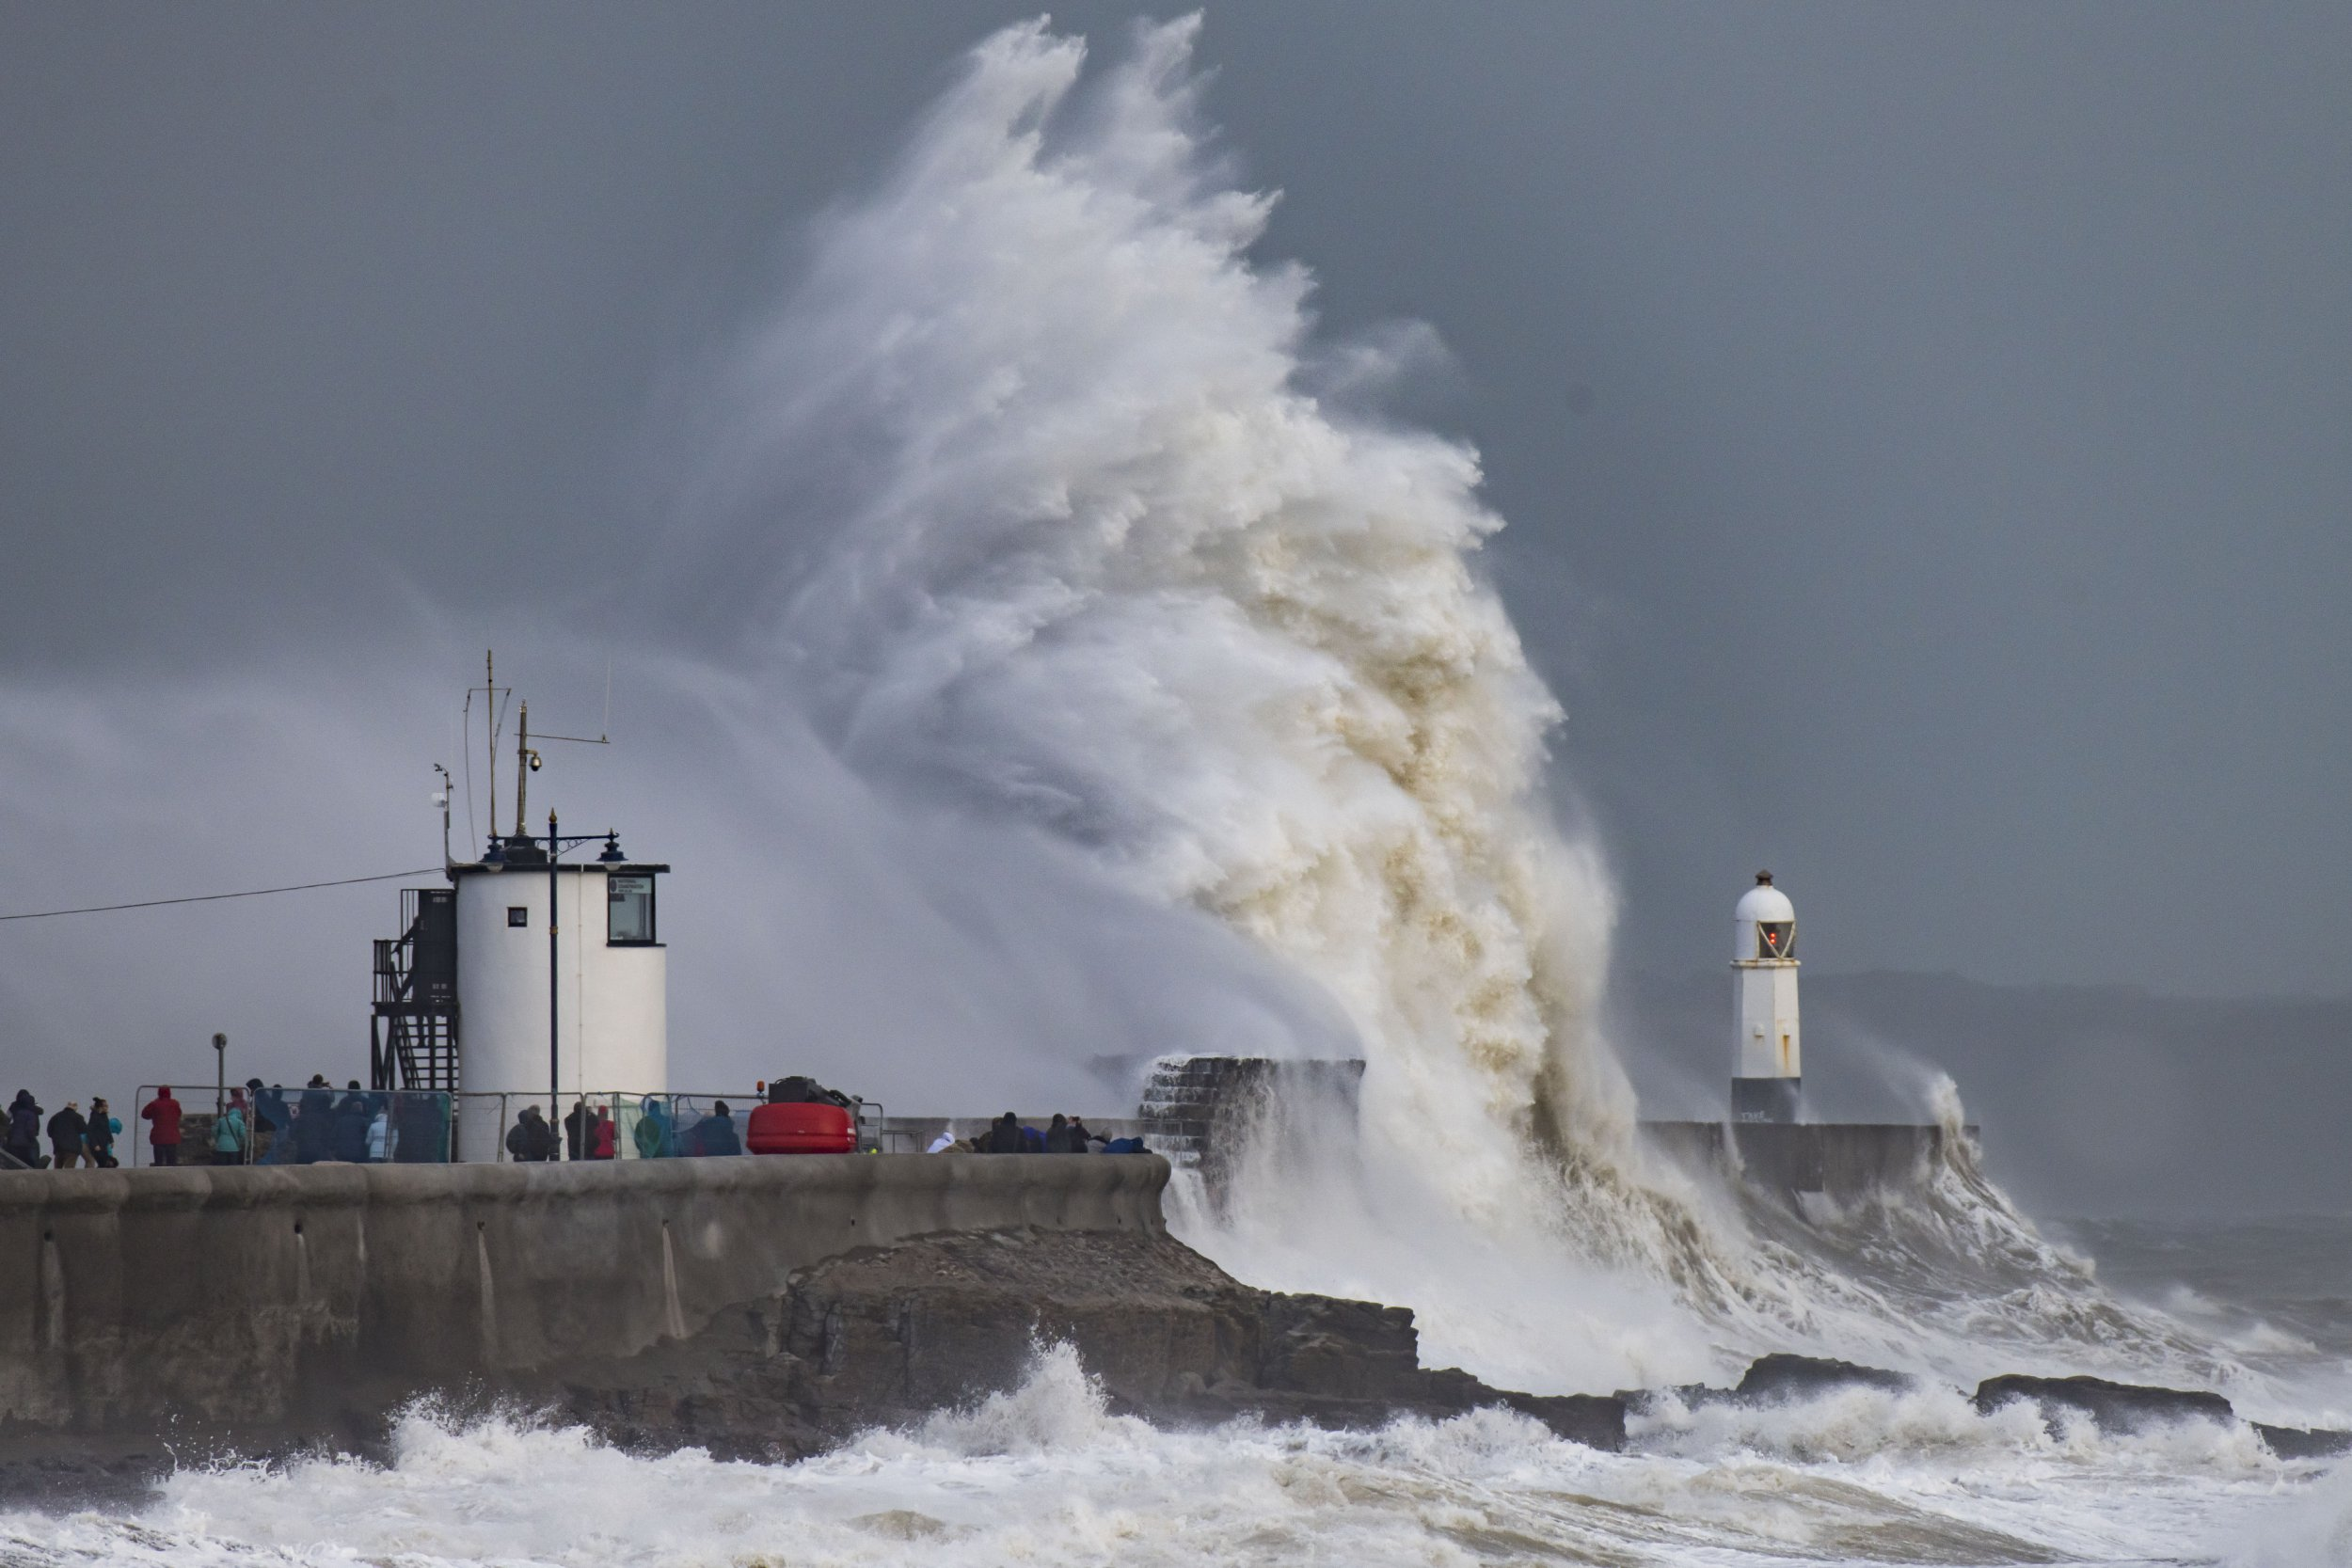 PORTHCAWL, WALES - MARCH 3: Waves crash against the harbour wall during Storm Freya on March 3 at Porthcawl, Wales. The Met Office have issued a yellow weather warning for wind and have warned of the potential for large waves and spray at coastal locations. (Photo by Matthew Horwood/Getty Images)